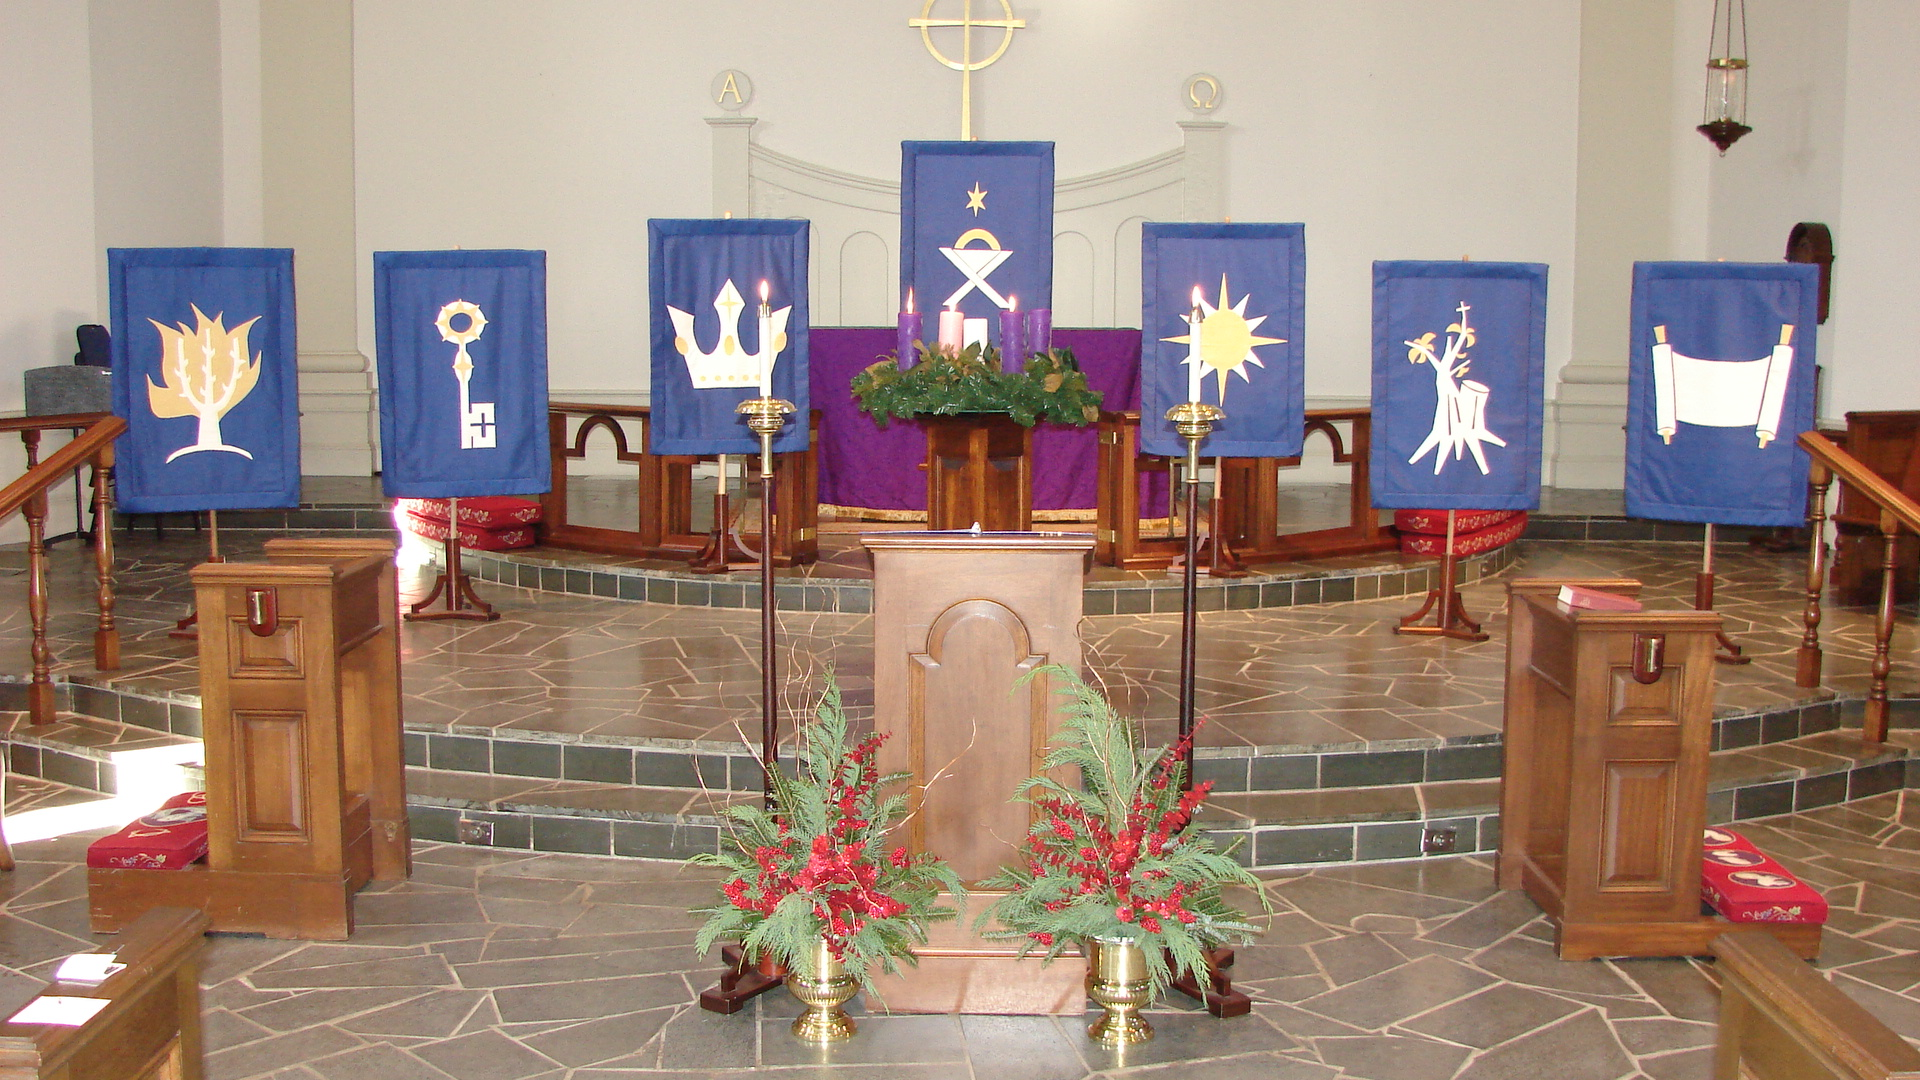 The symbols on the banners, derived from the Old Testament, are as ...